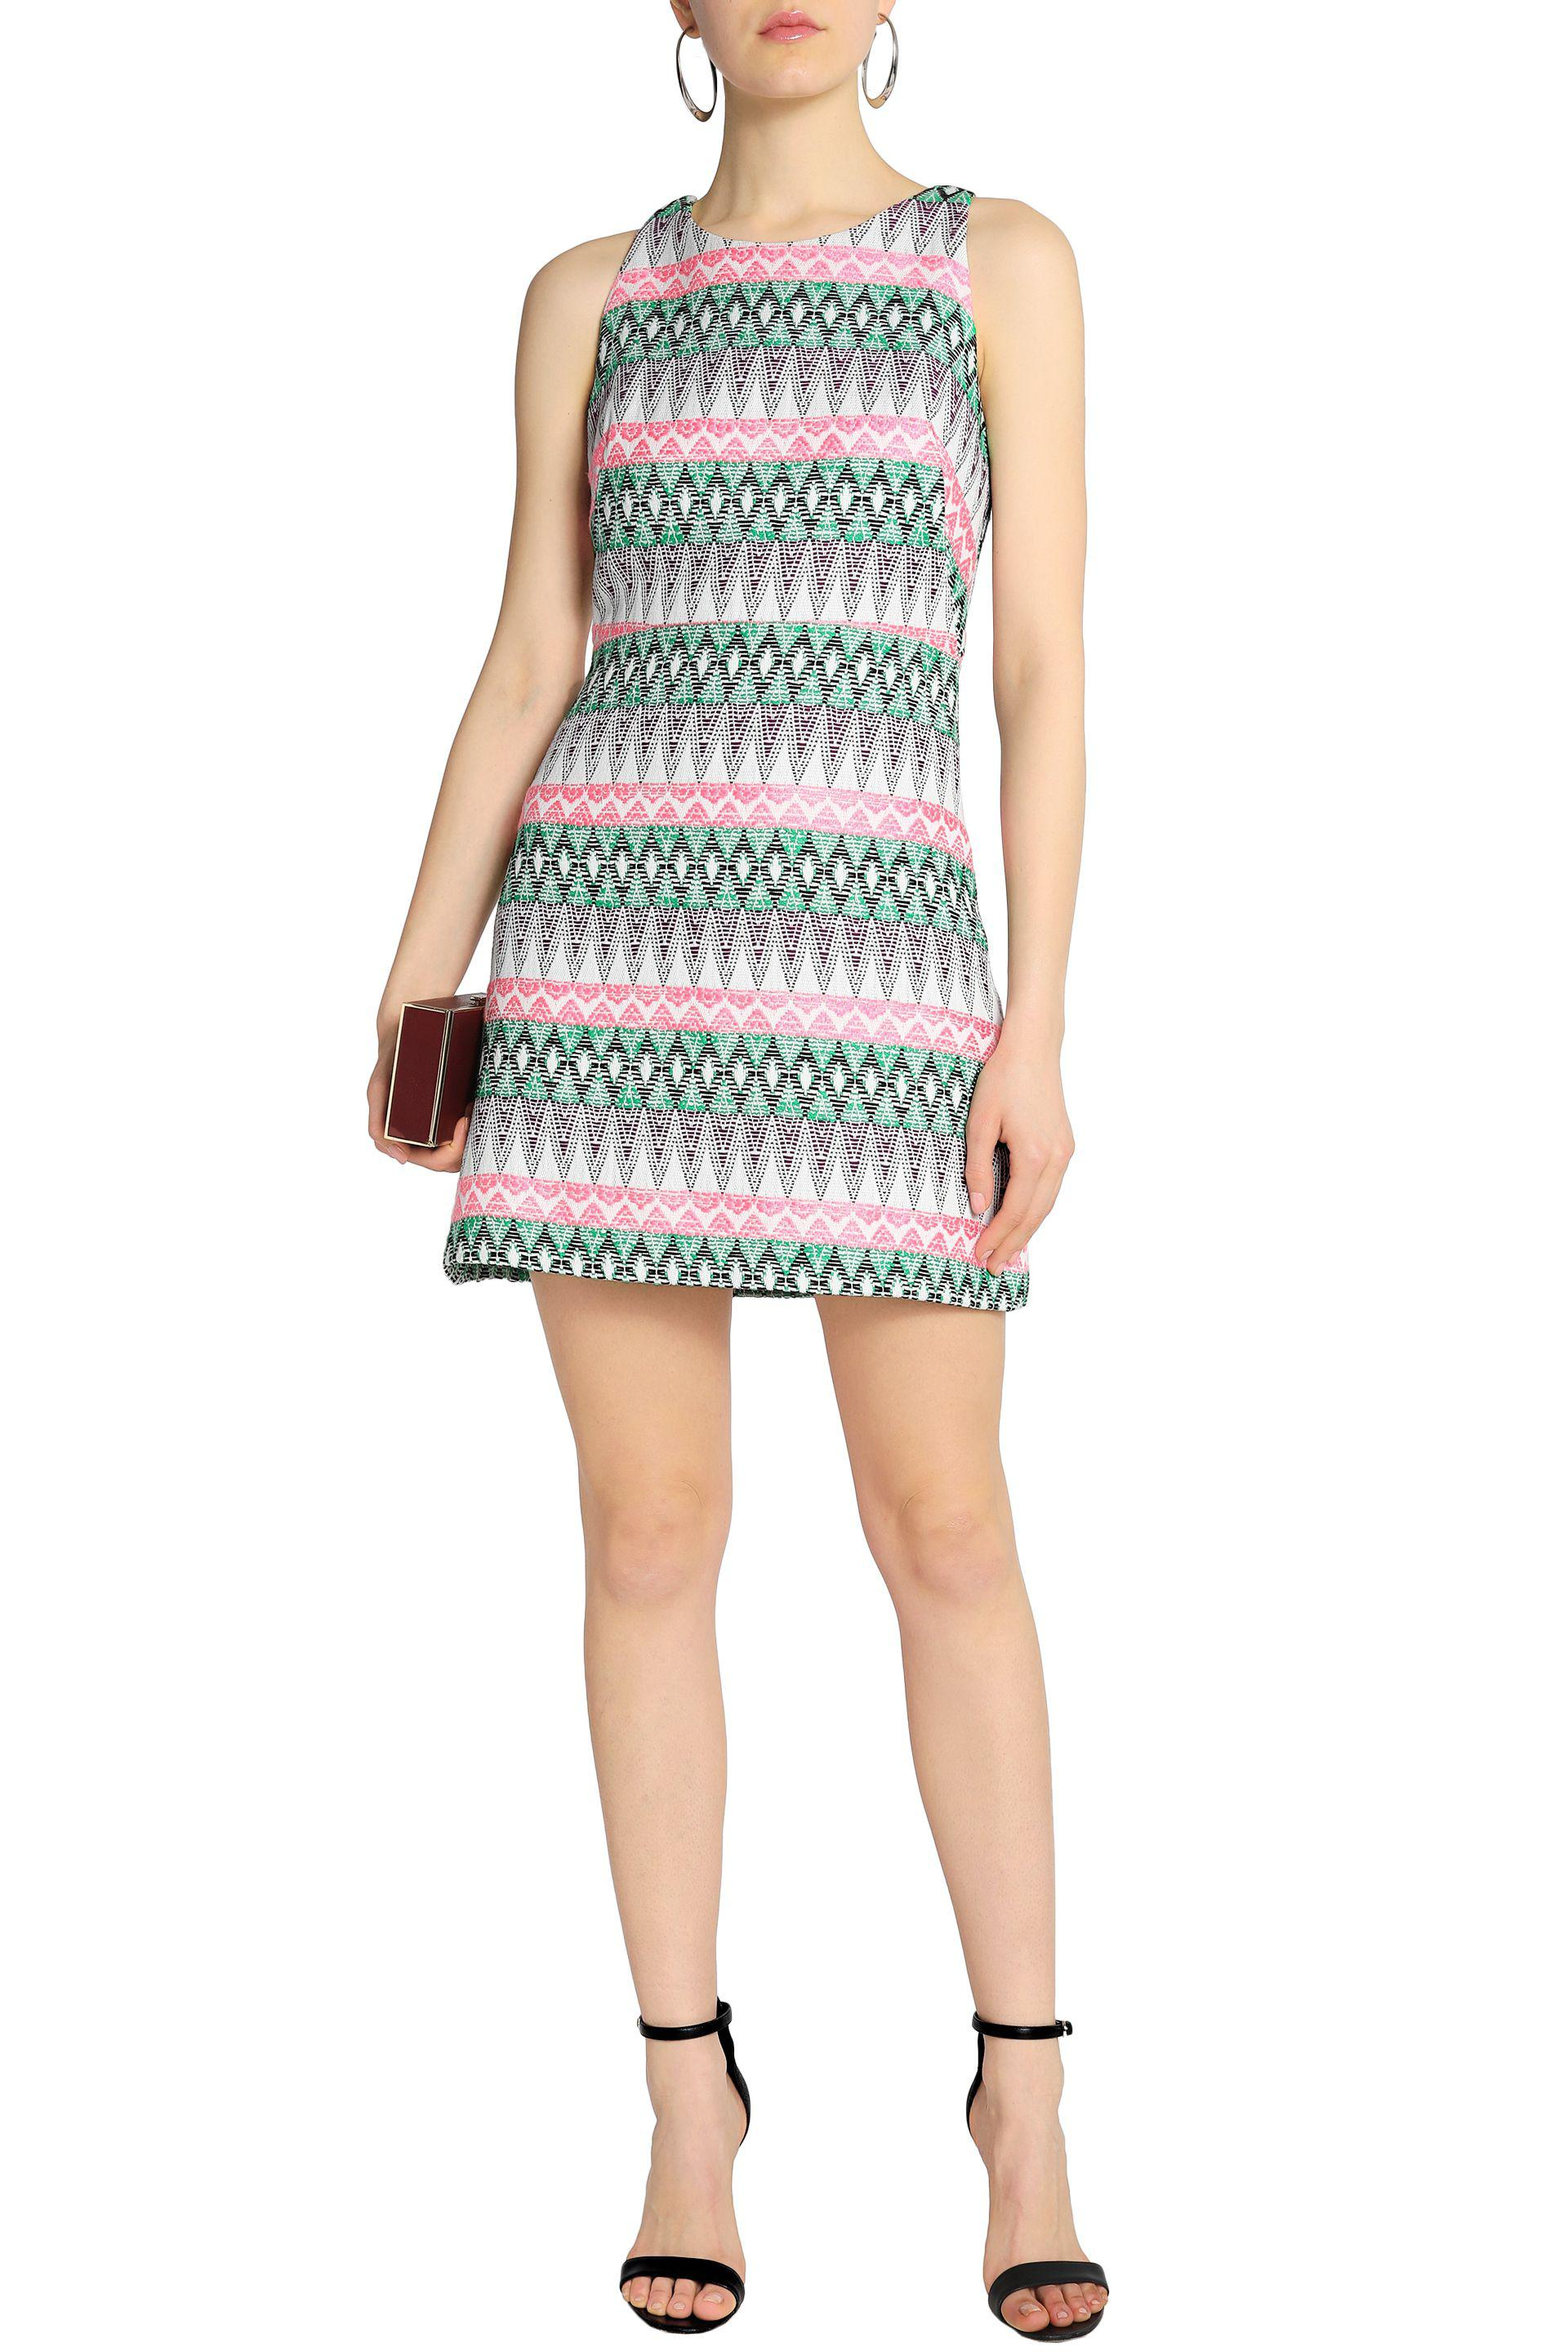 Milly Woman Cotton-blend Jacquard Mini Dress Pink Size 2 Milly 100% Guaranteed For Sale Perfect Buy Cheap The Cheapest QQAHc